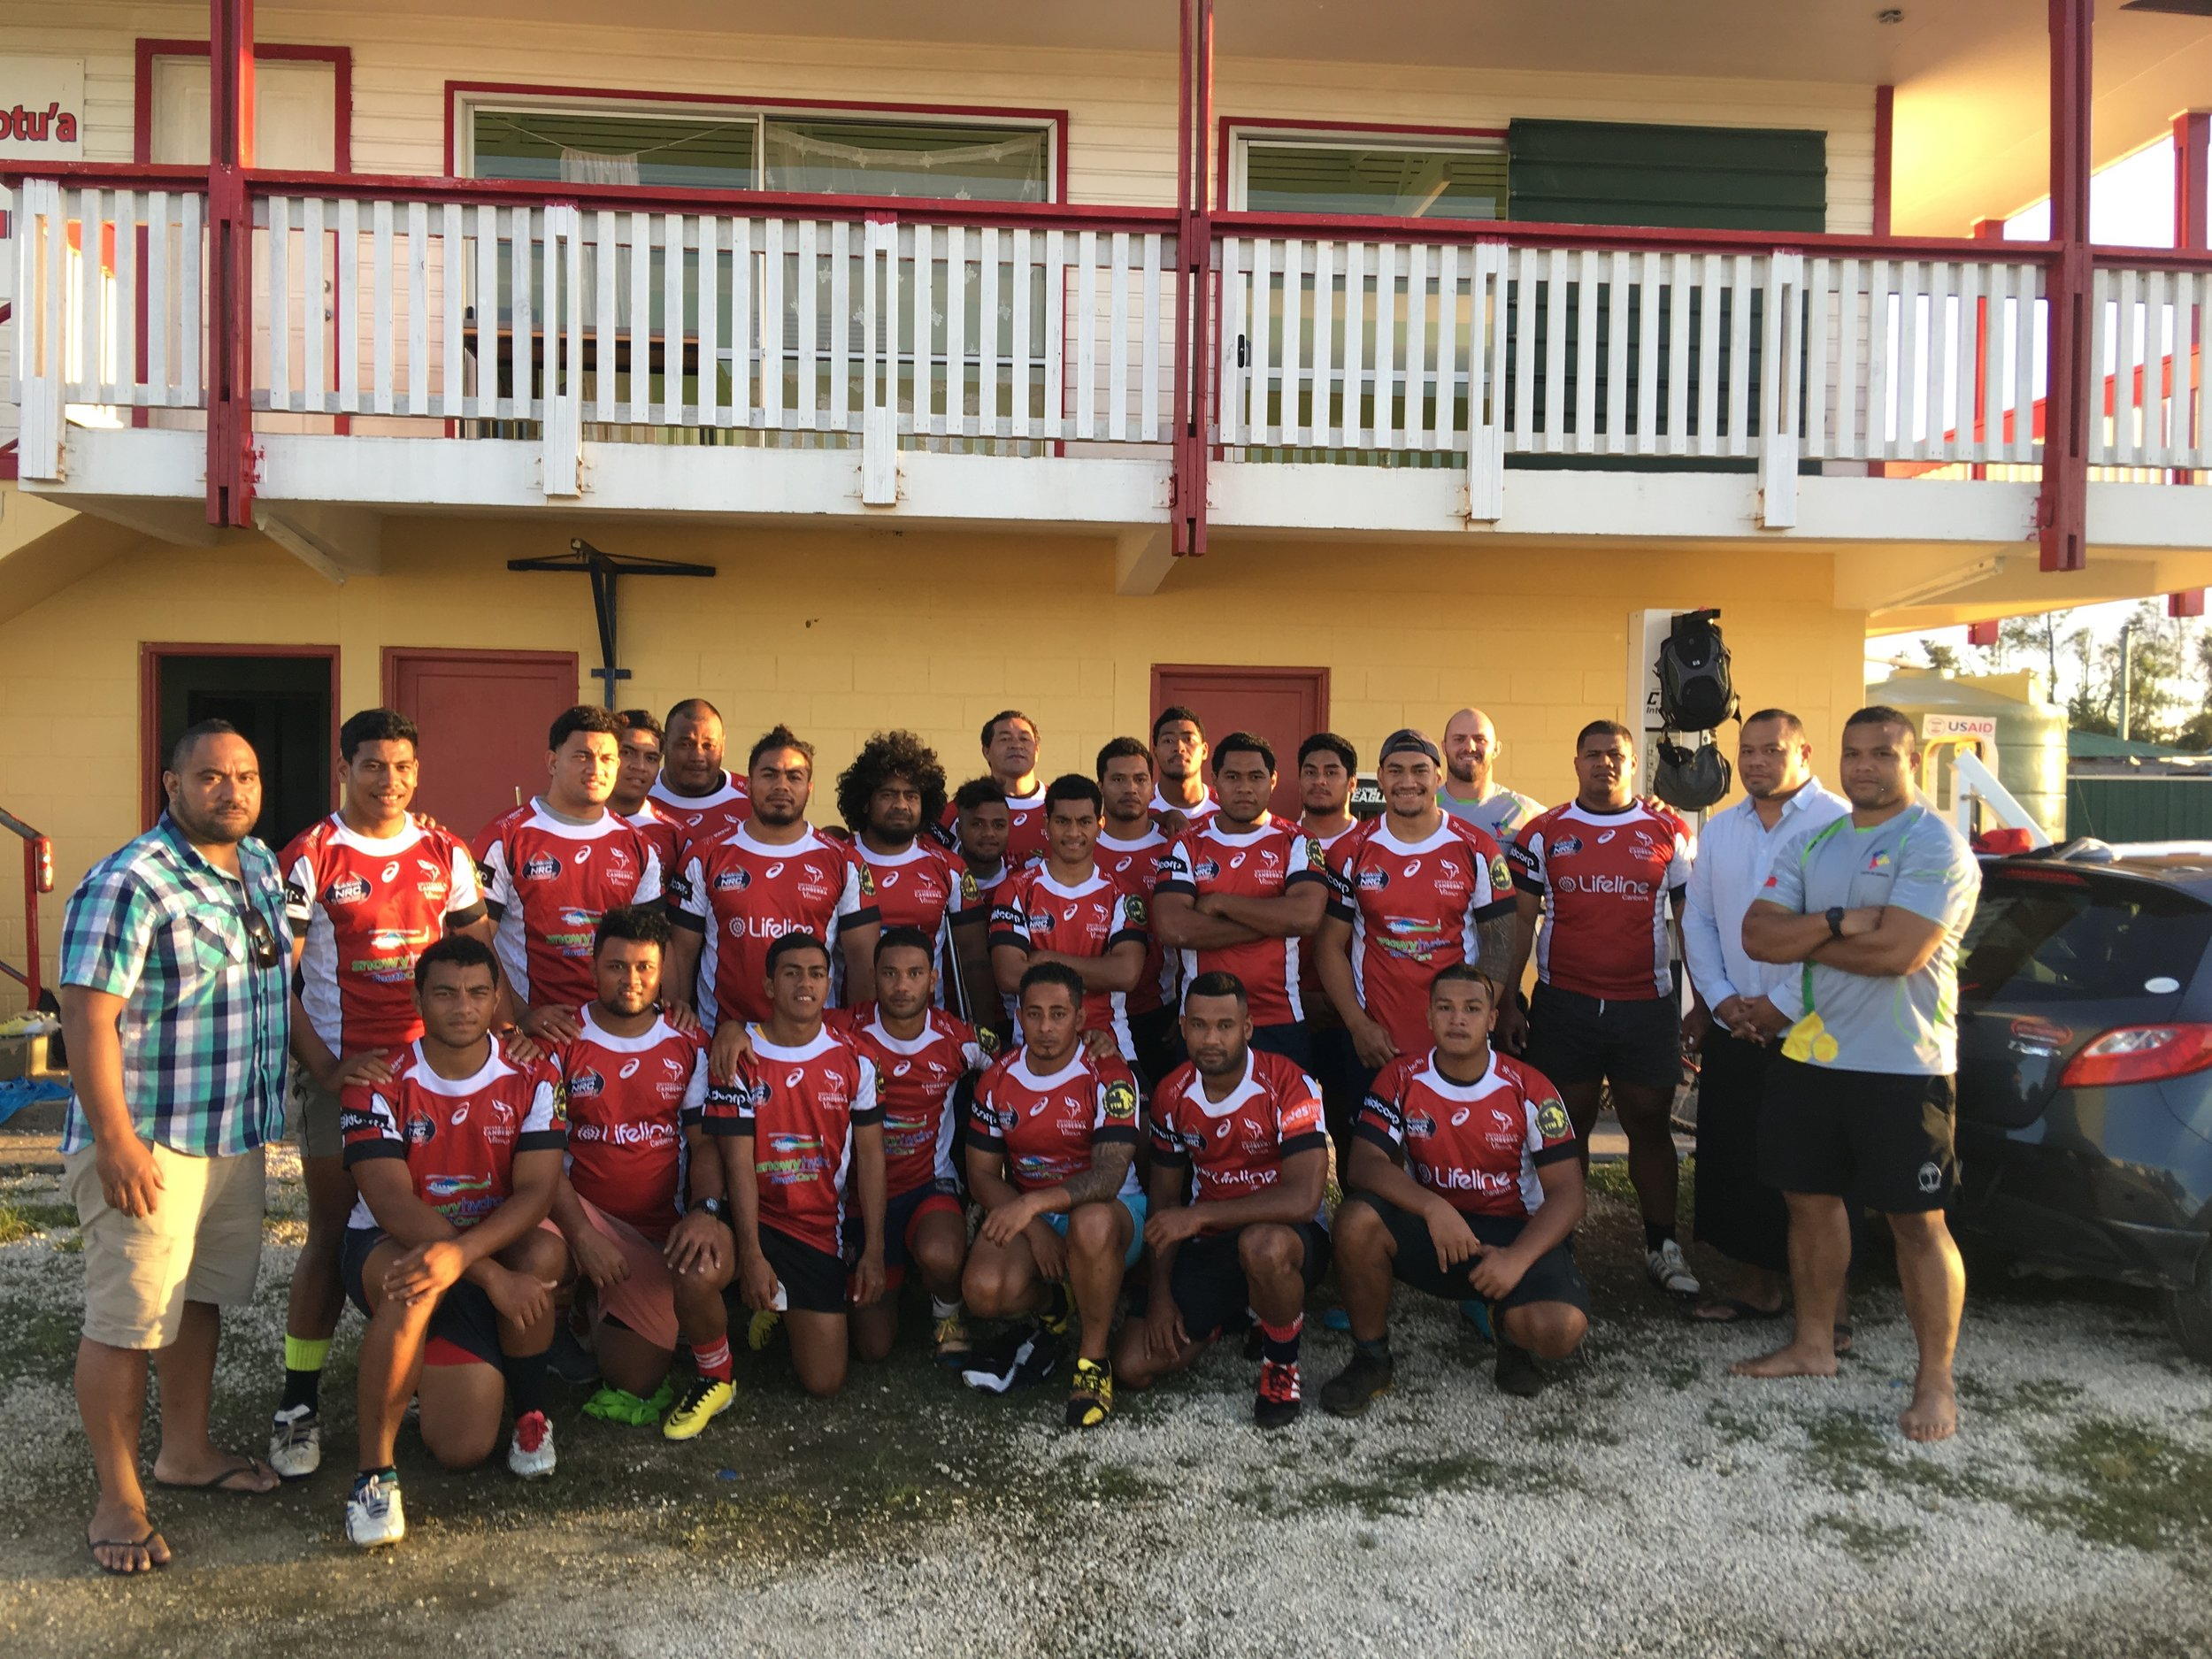 Under 21s Nuku'alofa team repping their new playing kit from 1-23... thanks to Brumbies and Vikings rugby teams